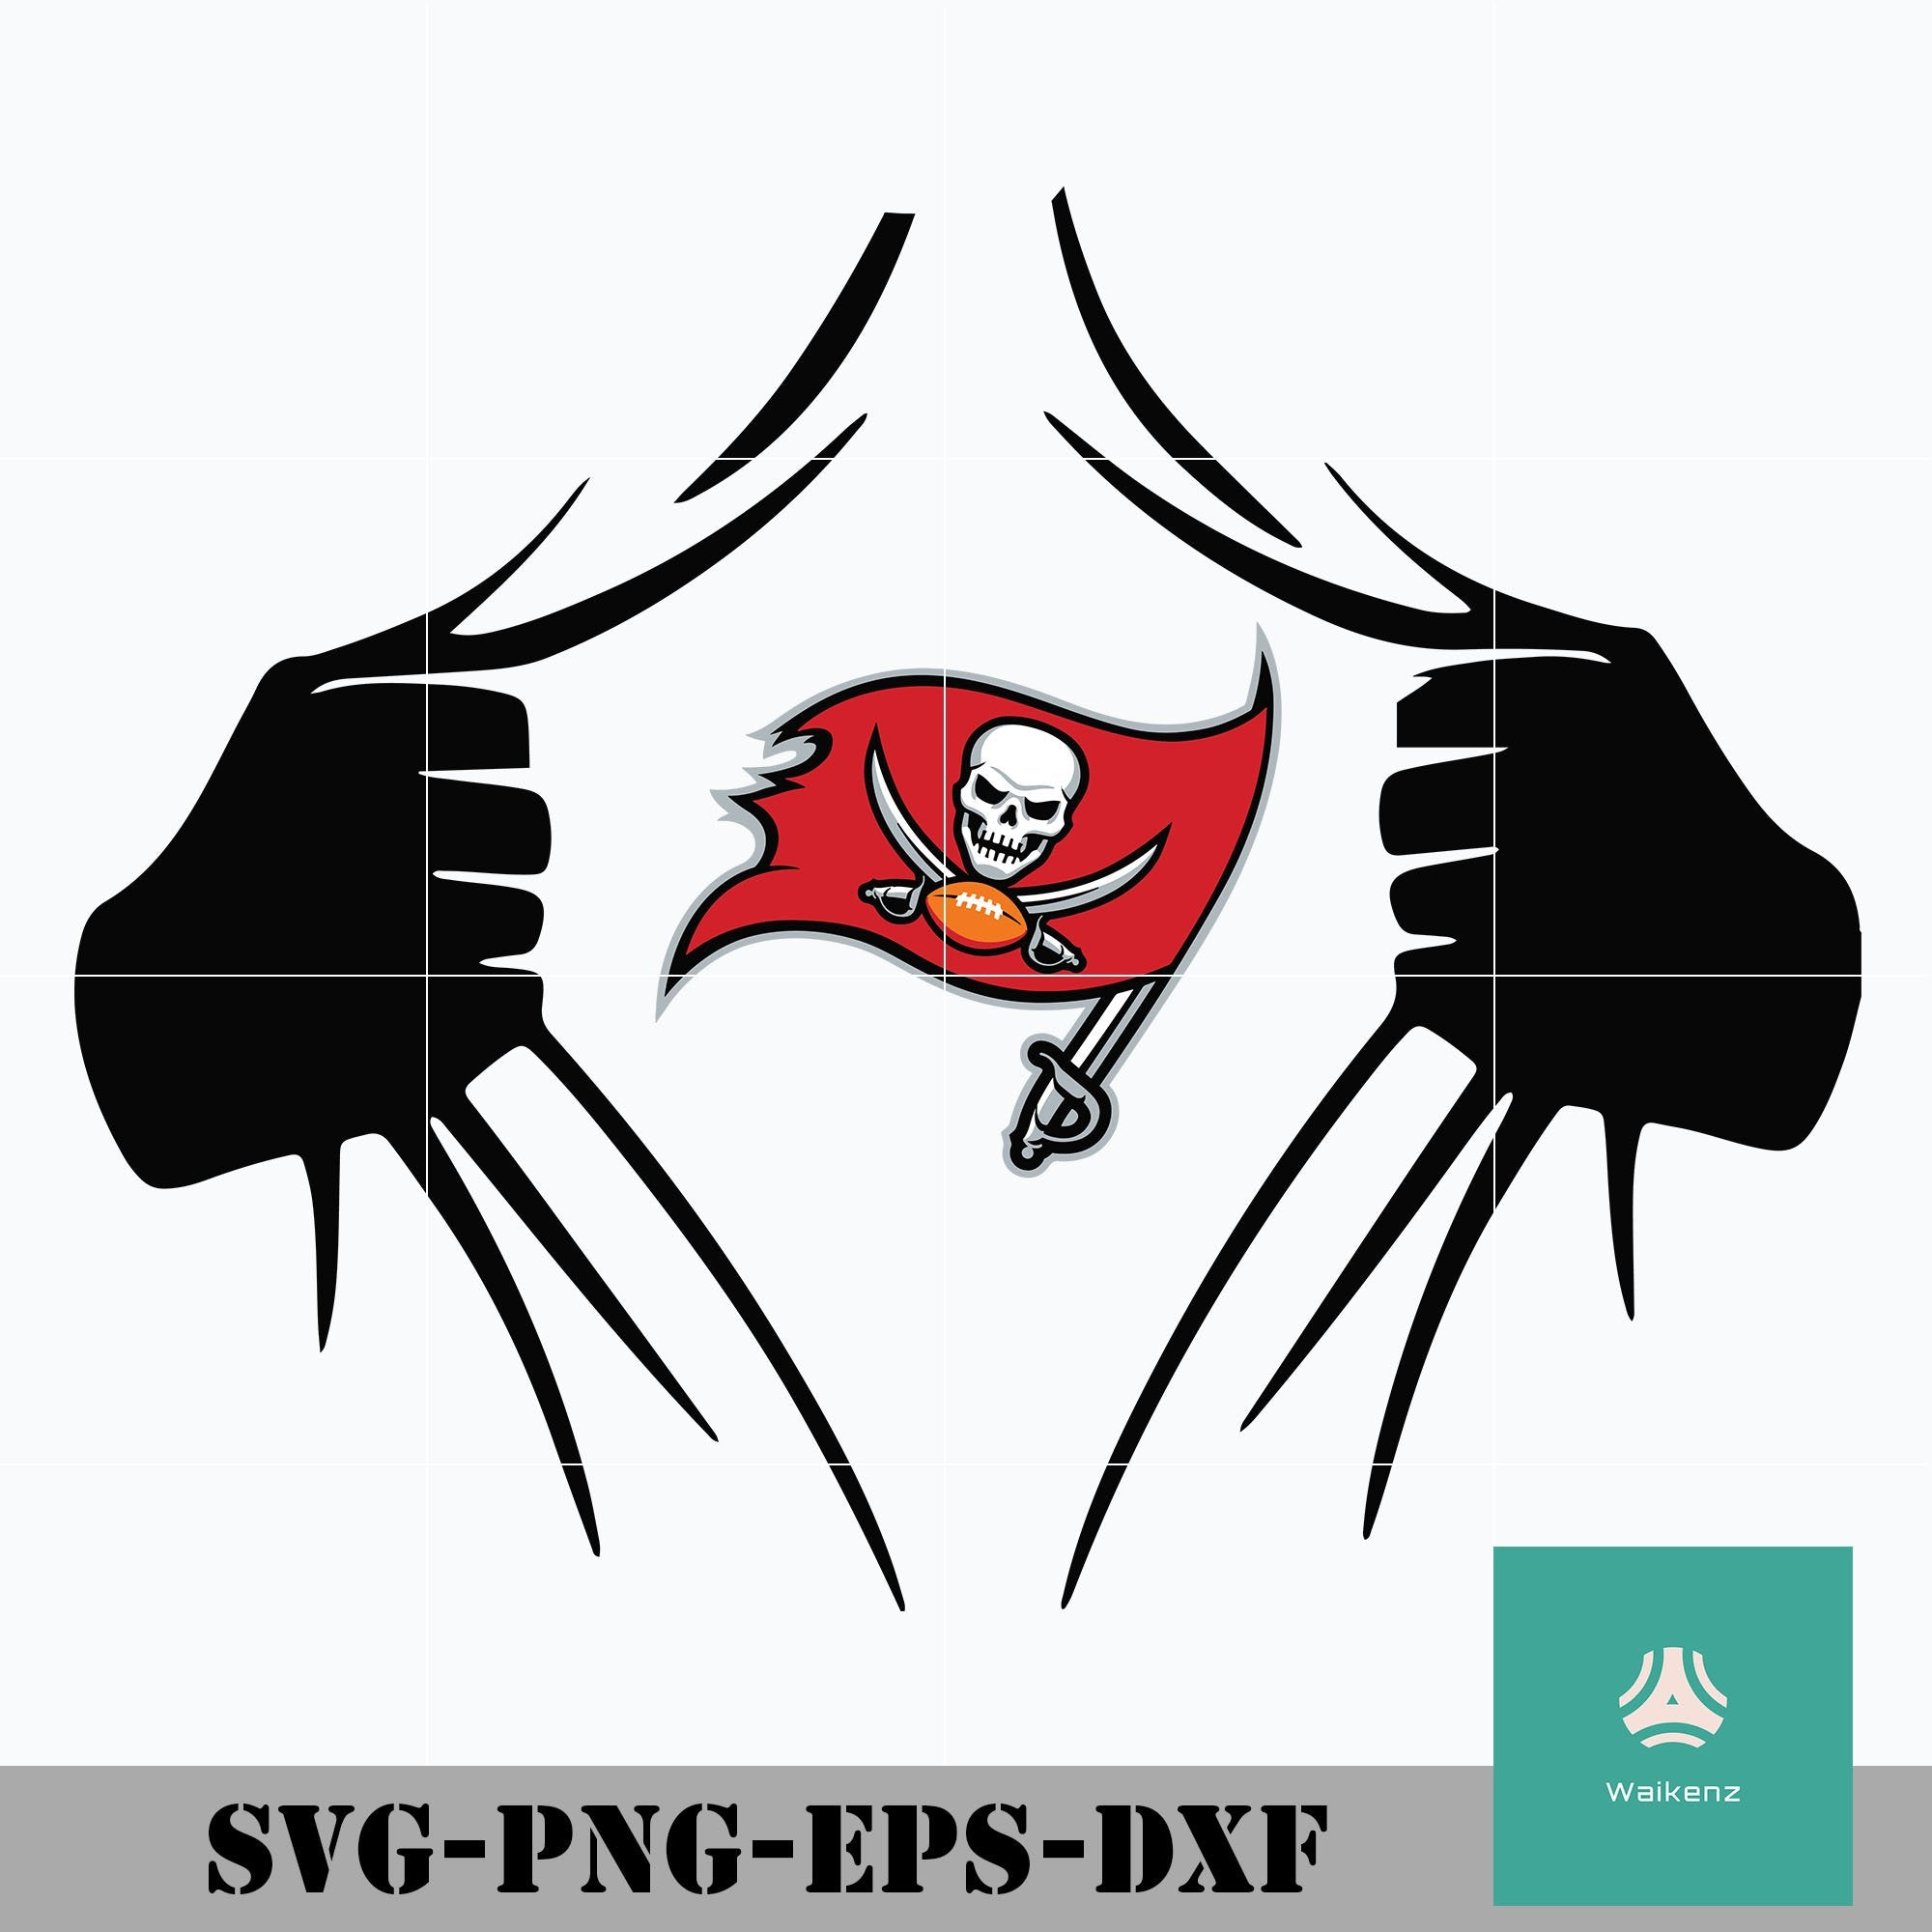 buccaneers superman logo svg tampa bay buccaneers svg buccaneers svg waikenz buccaneers superman logo svg tampa bay